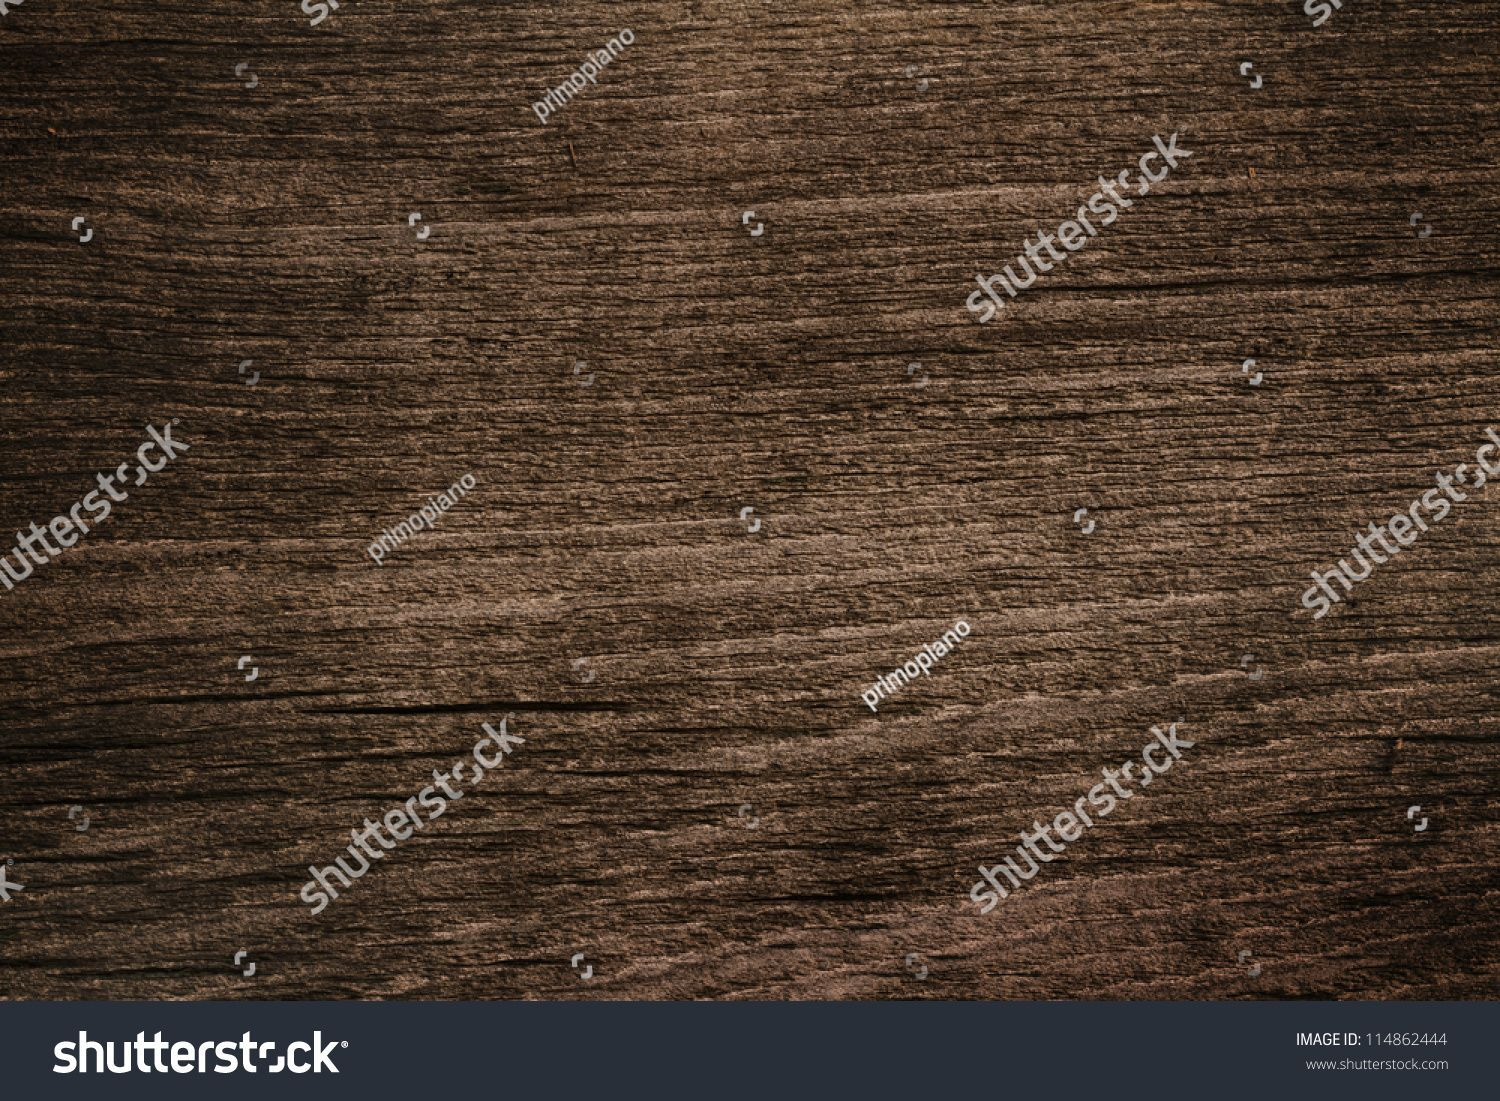 Wood texture background #Sponsored , #Affiliate, #Wood#texture#background #woodtexturebackground Wood texture background #Sponsored , #Affiliate, #Wood#texture#background #woodtexturebackground